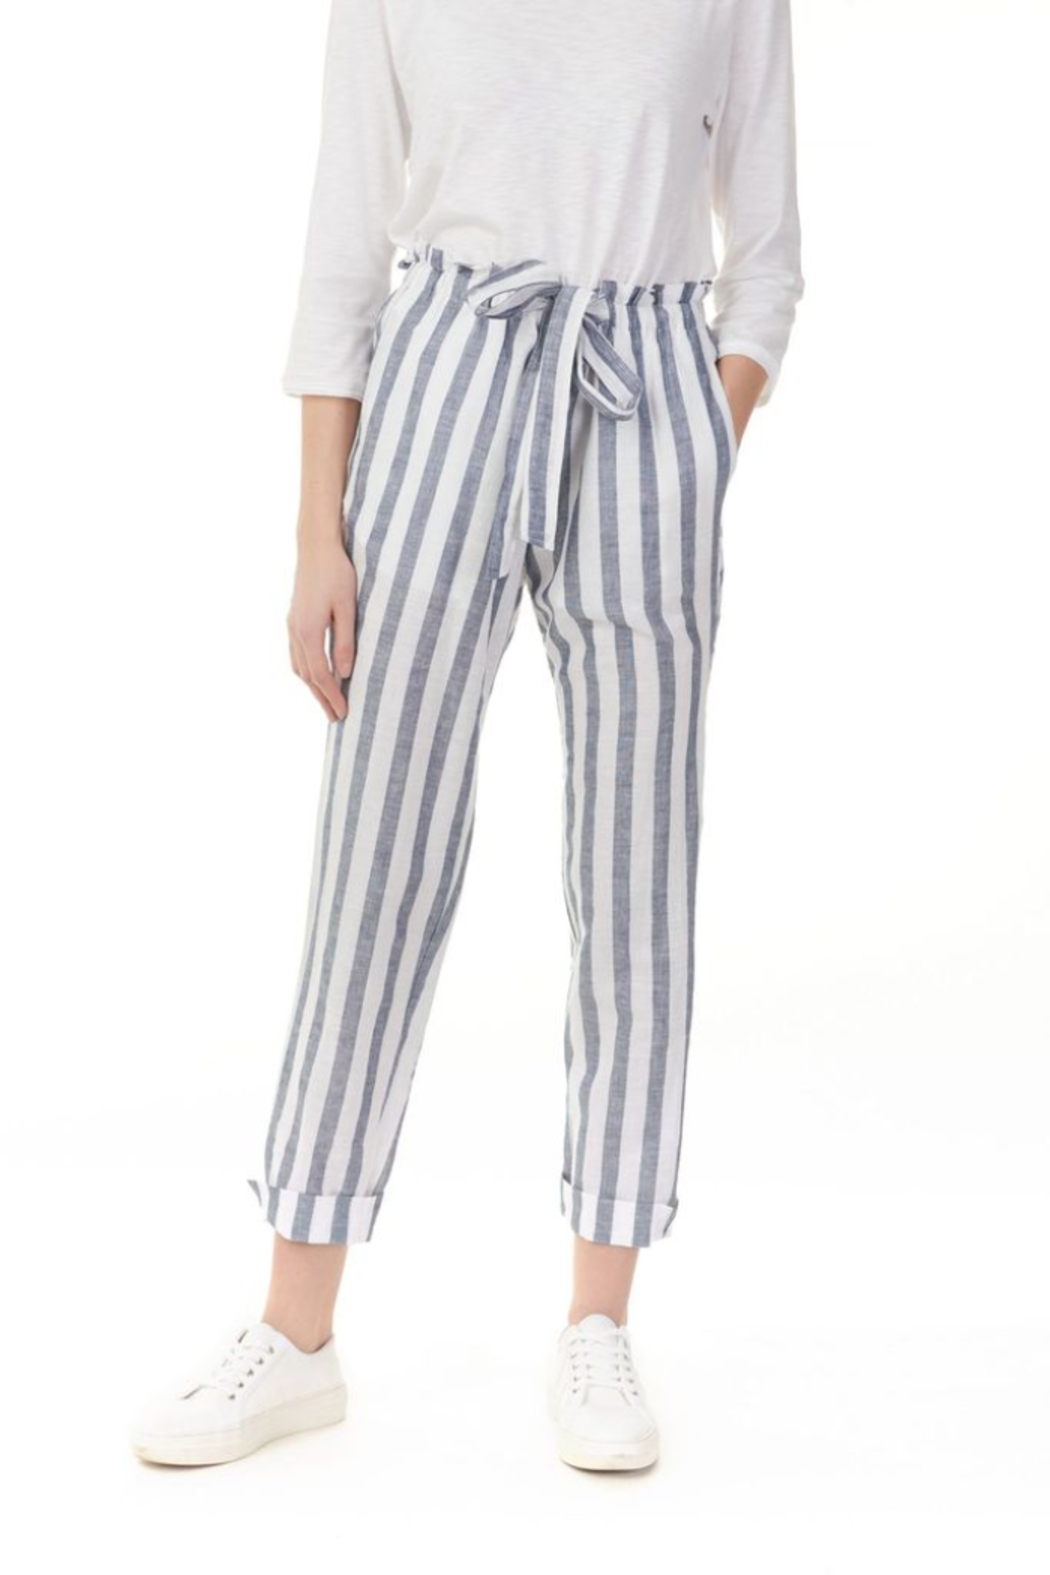 Charlie B Striped Linen Pant - Front Full Image